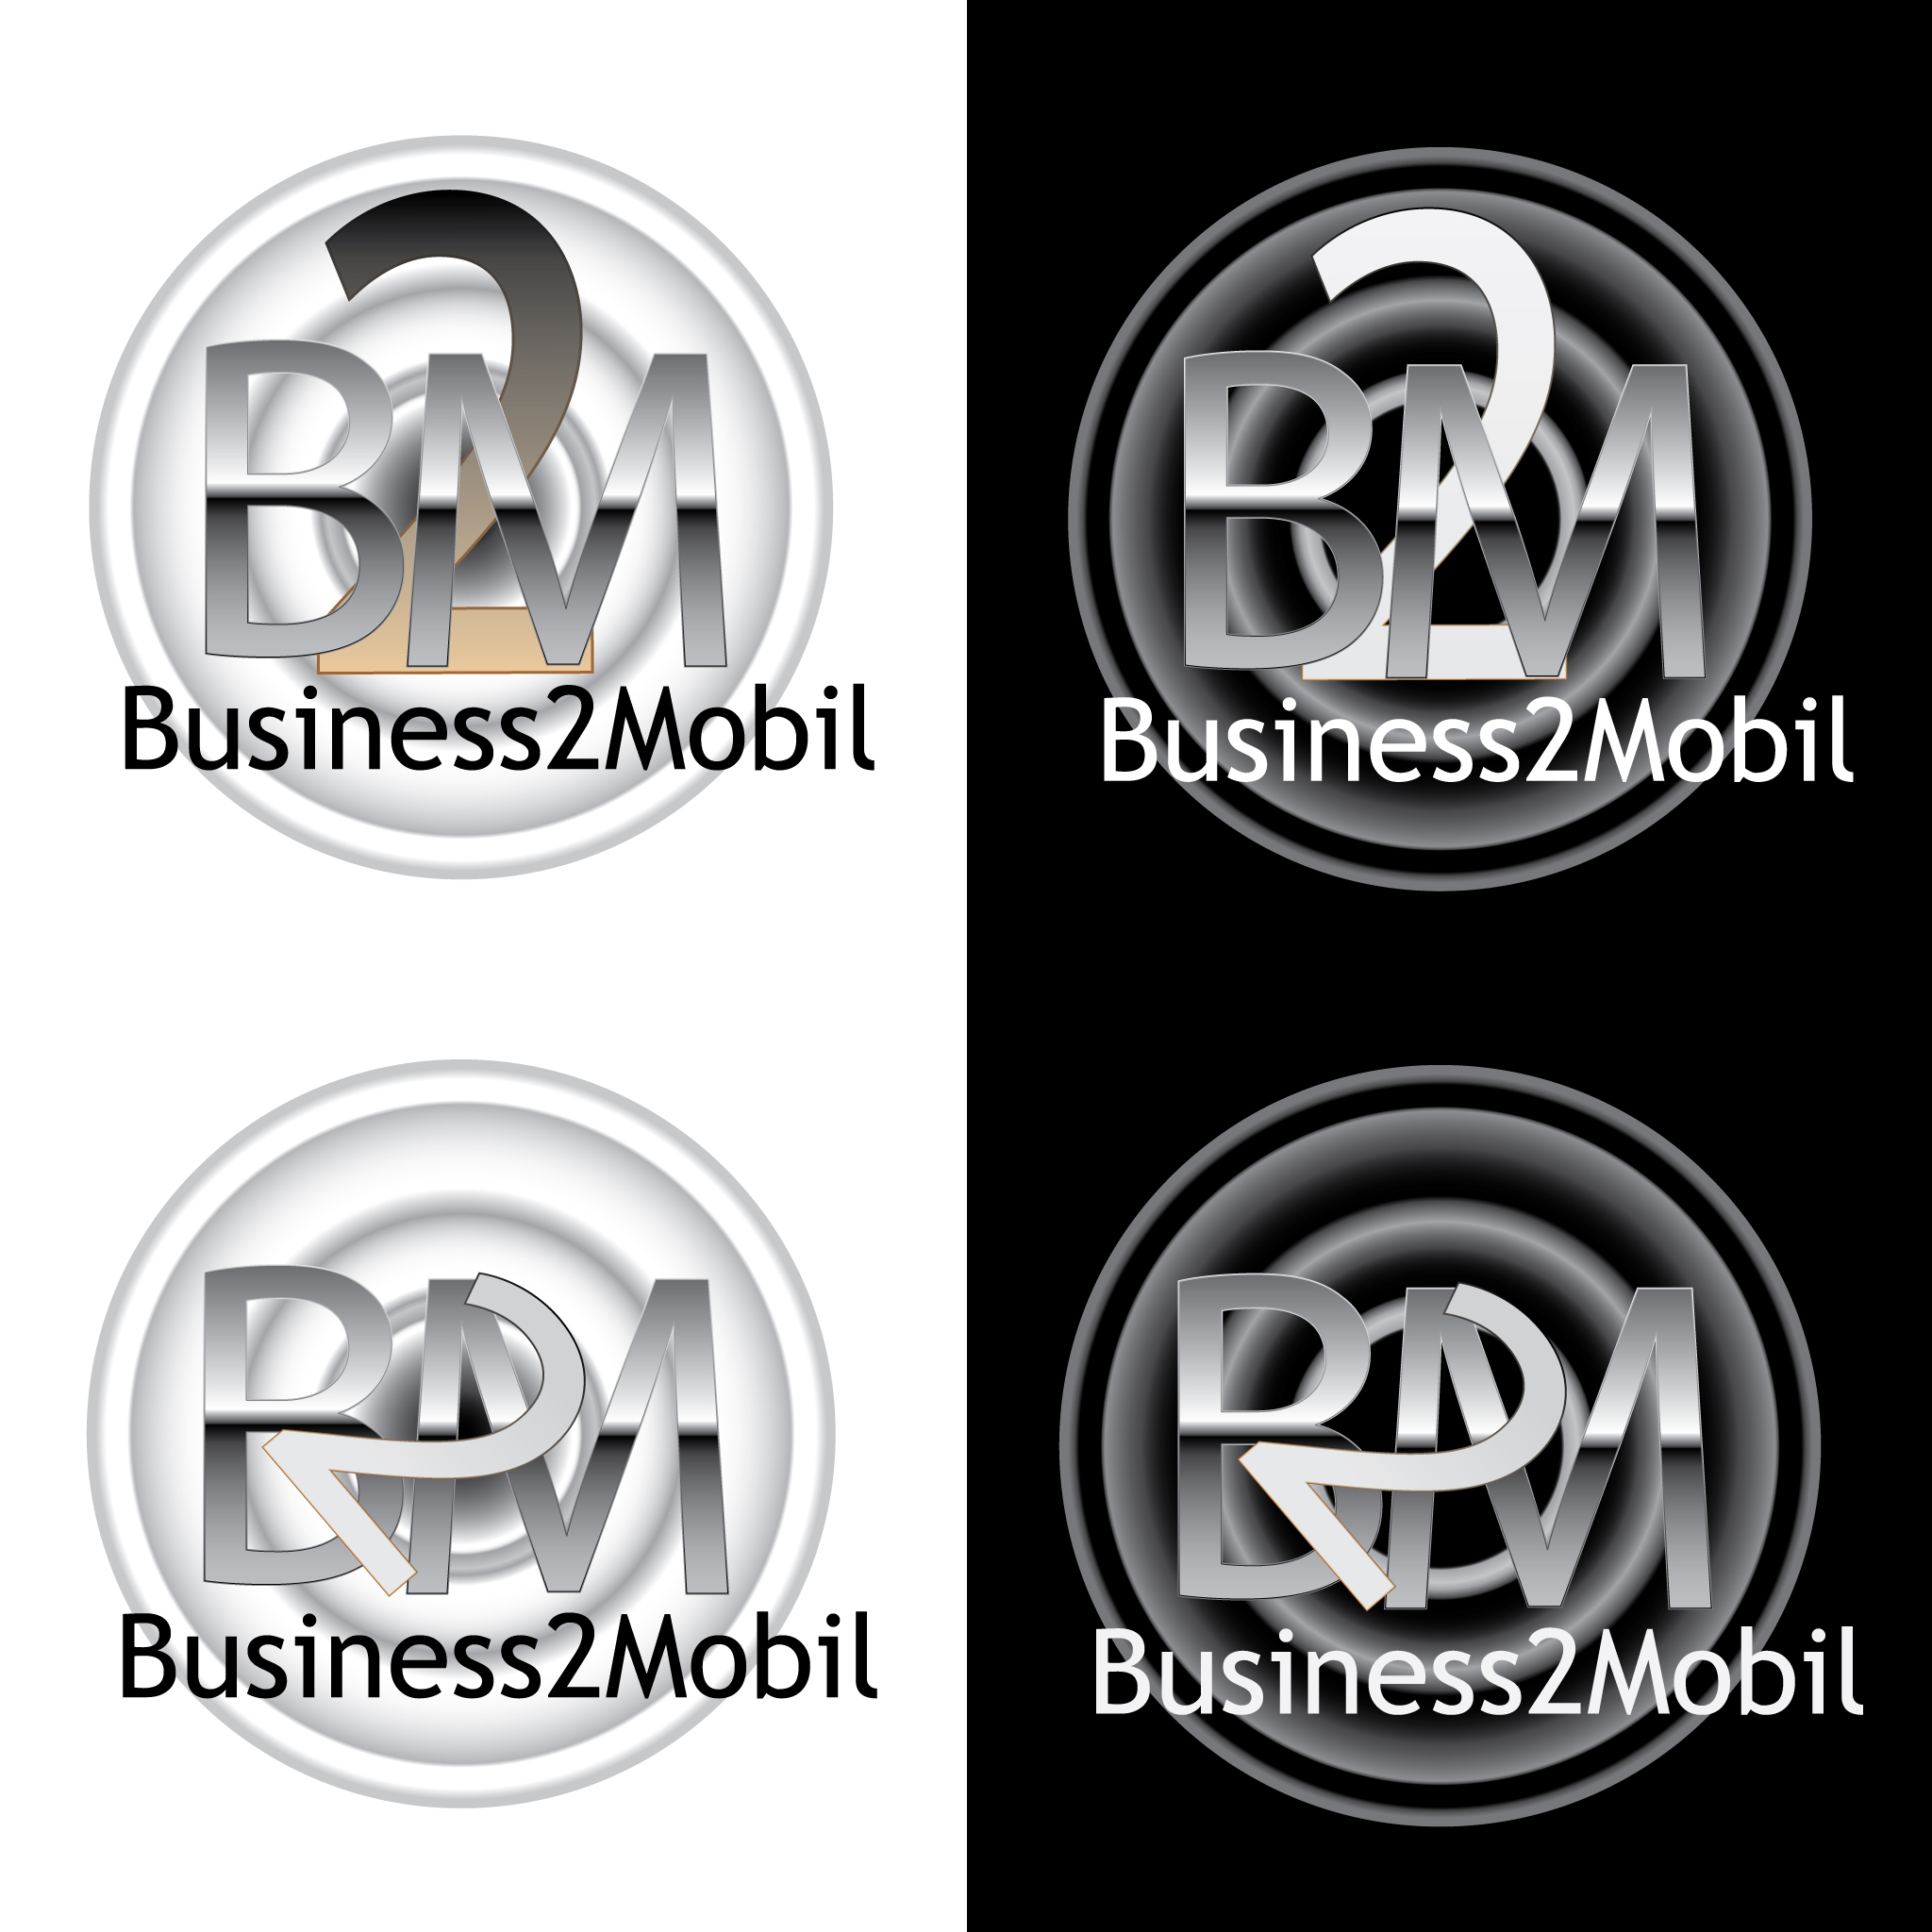 Logo Design by Monte Drebenstedt - Entry No. 115 in the Logo Design Contest Logo Design Needed for Exciting New Company Business2Mobile - B2M.